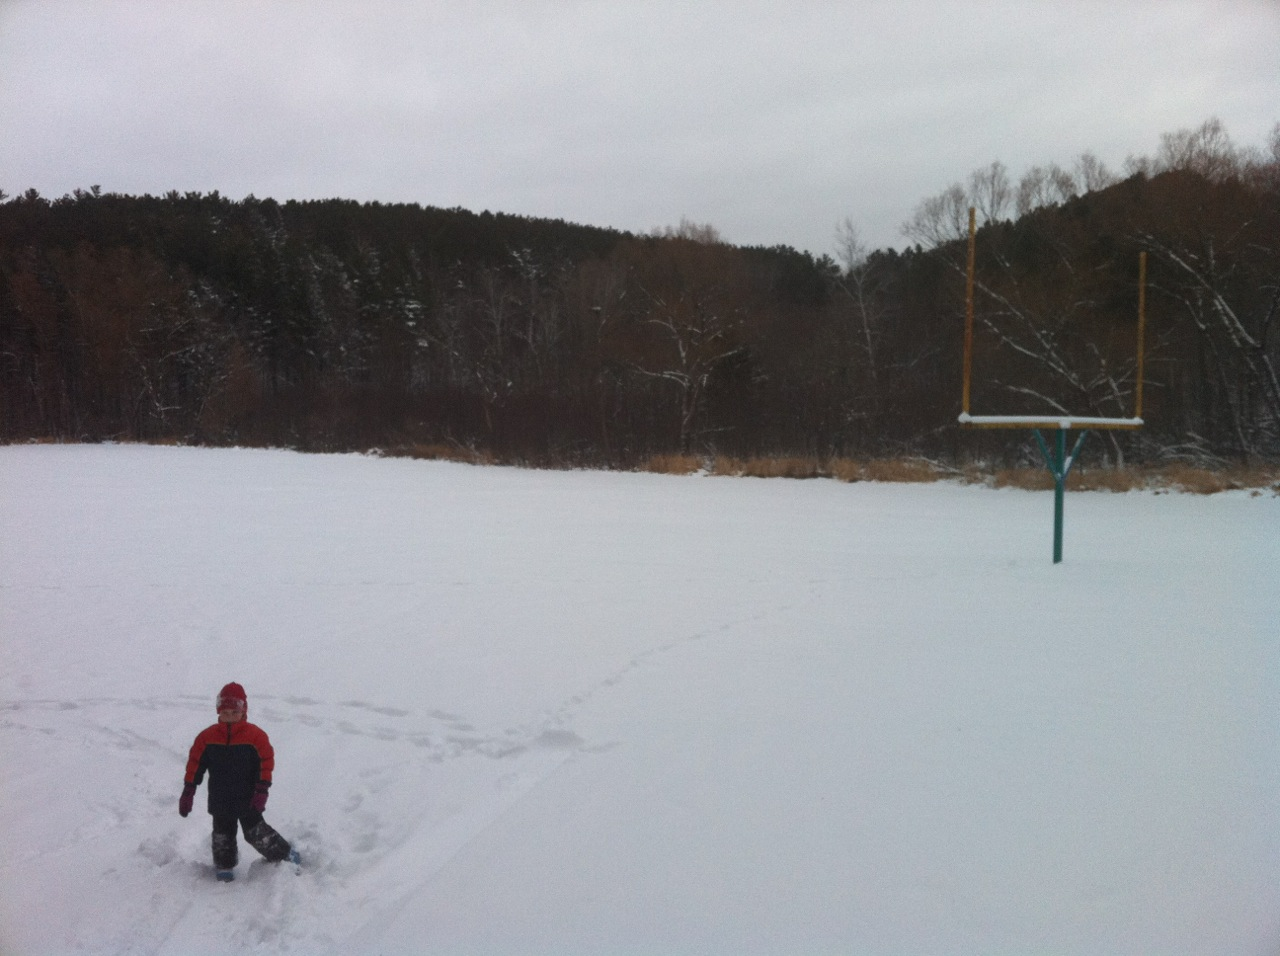 At the very bottom of the sledding hill is the old football field